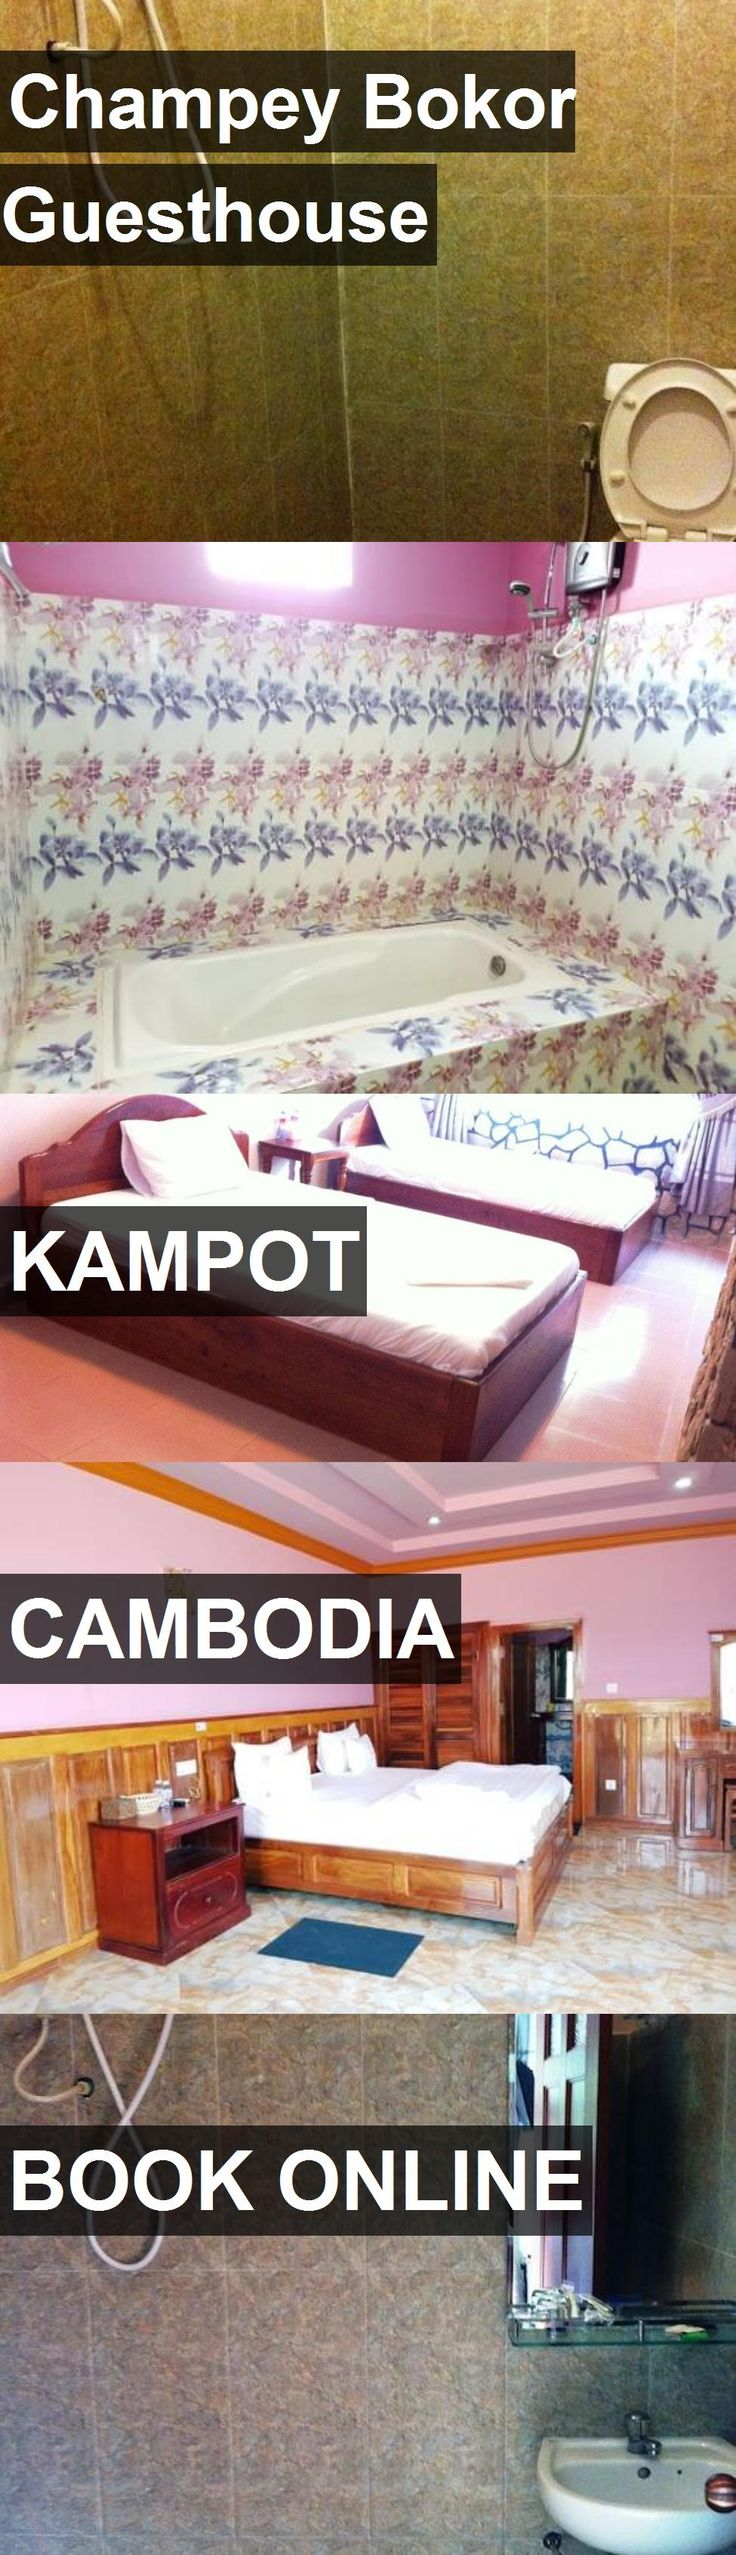 Hotel Champey Bokor Guesthouse in Kampot, Cambodia. For more information, photos, reviews and best prices please follow the link. #Cambodia #Kampot #ChampeyBokorGuesthouse #hotel #travel #vacation